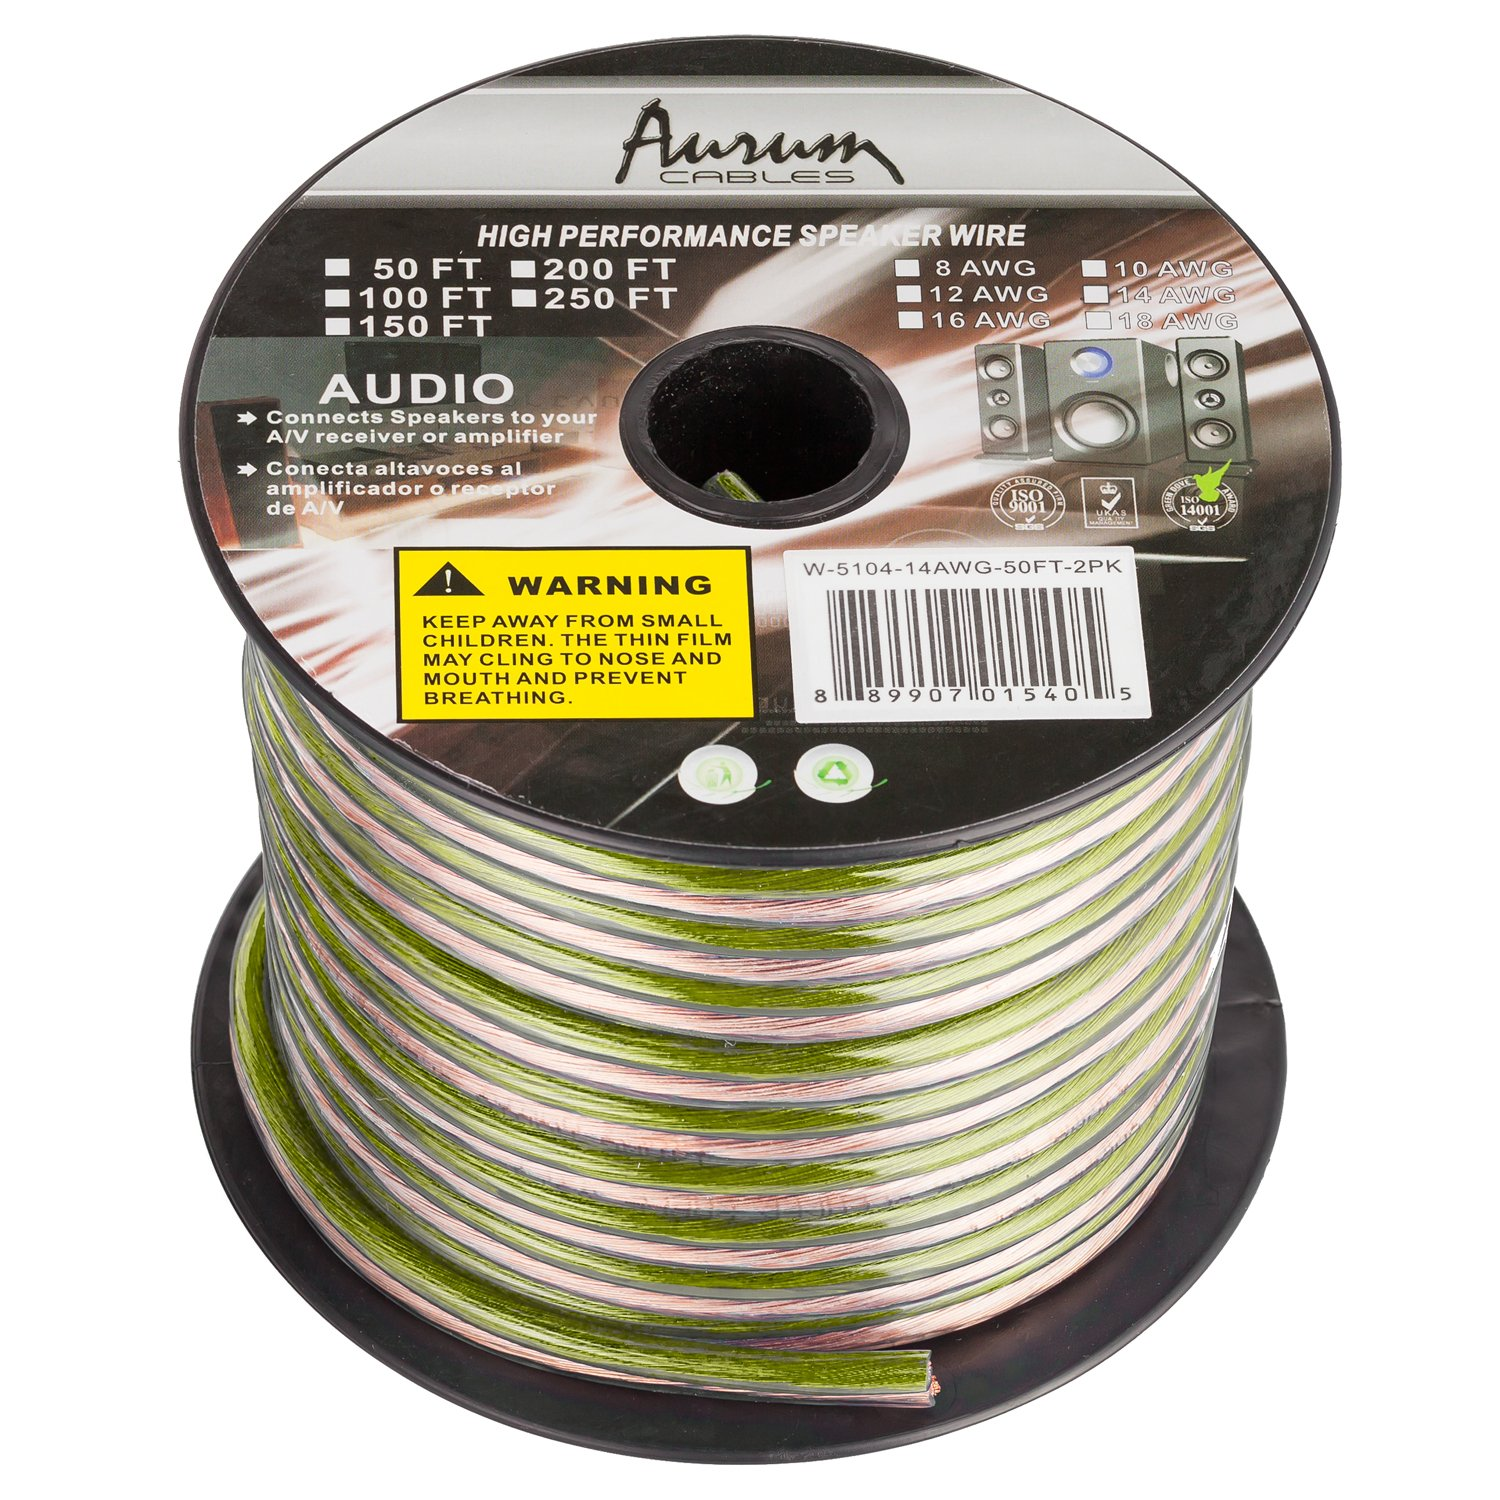 Amazon.com: Aurum Cables 16 Gauge Transparent PVC Speaker Wire w/ ft markings every 5 ft - 100 feet: Electronics